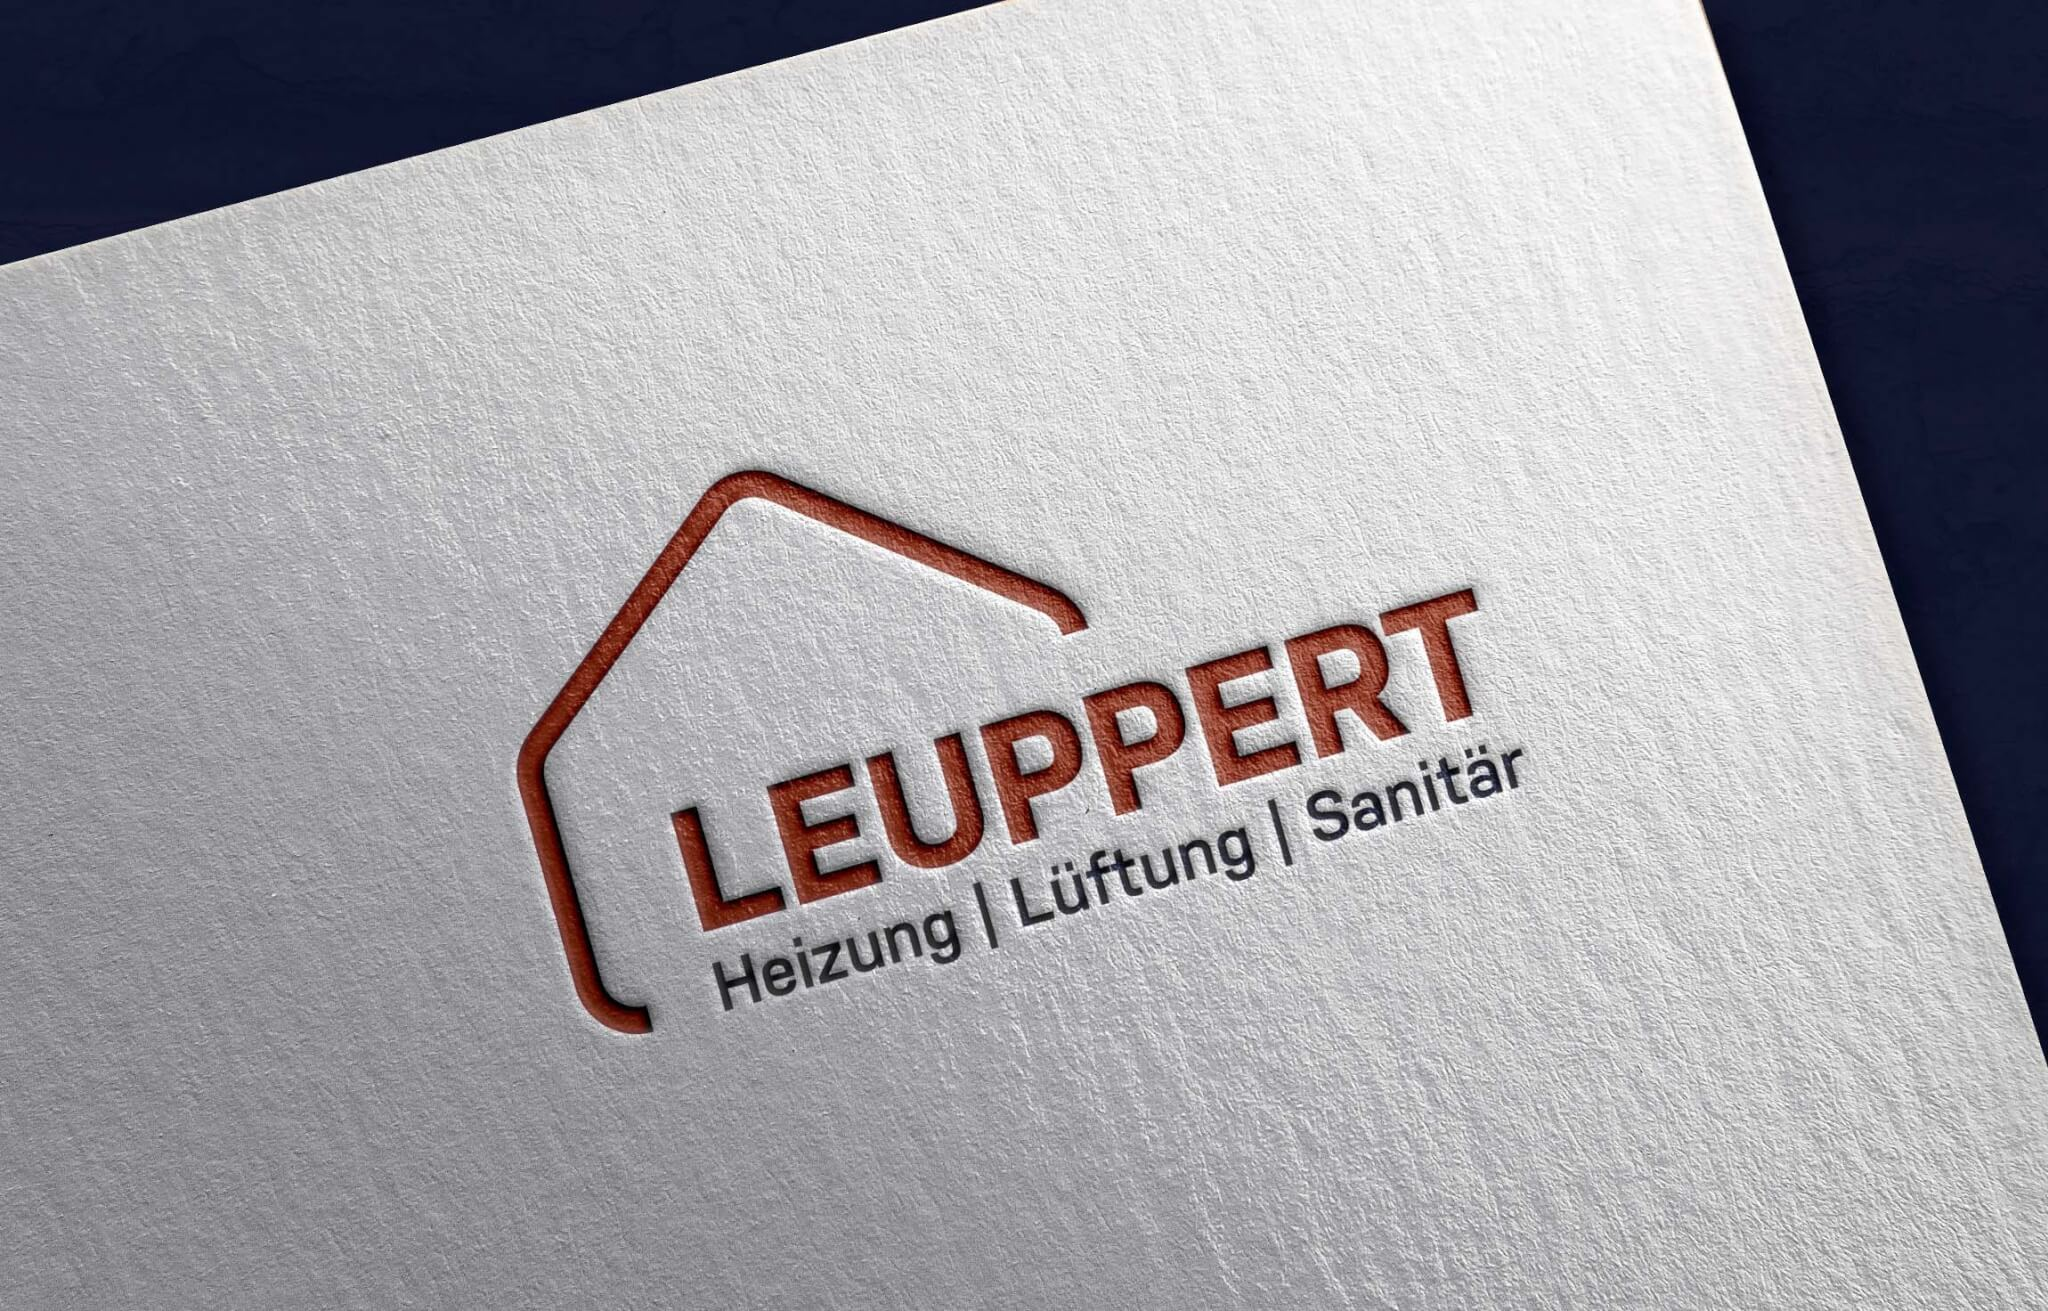 Logodesign Leuppert